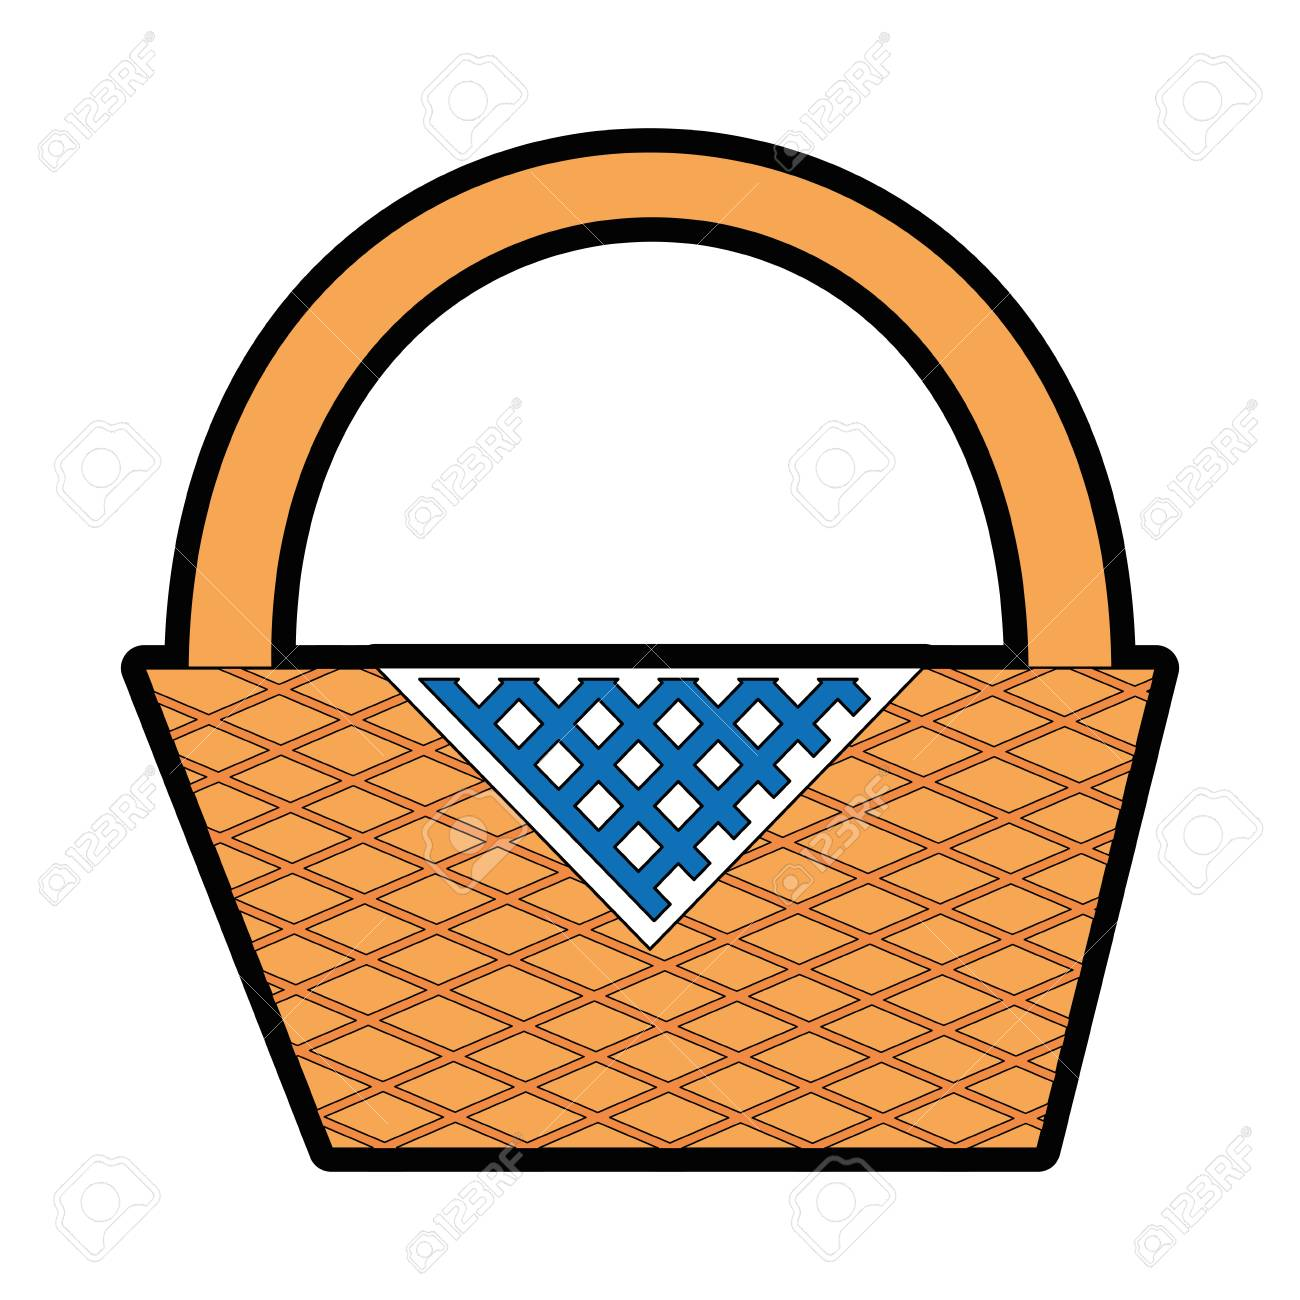 Picnic Basket Cartoon Icon Vector Illustration Graphic Design Royalty Free Cliparts Vectors And Stock Illustration Image 81621430